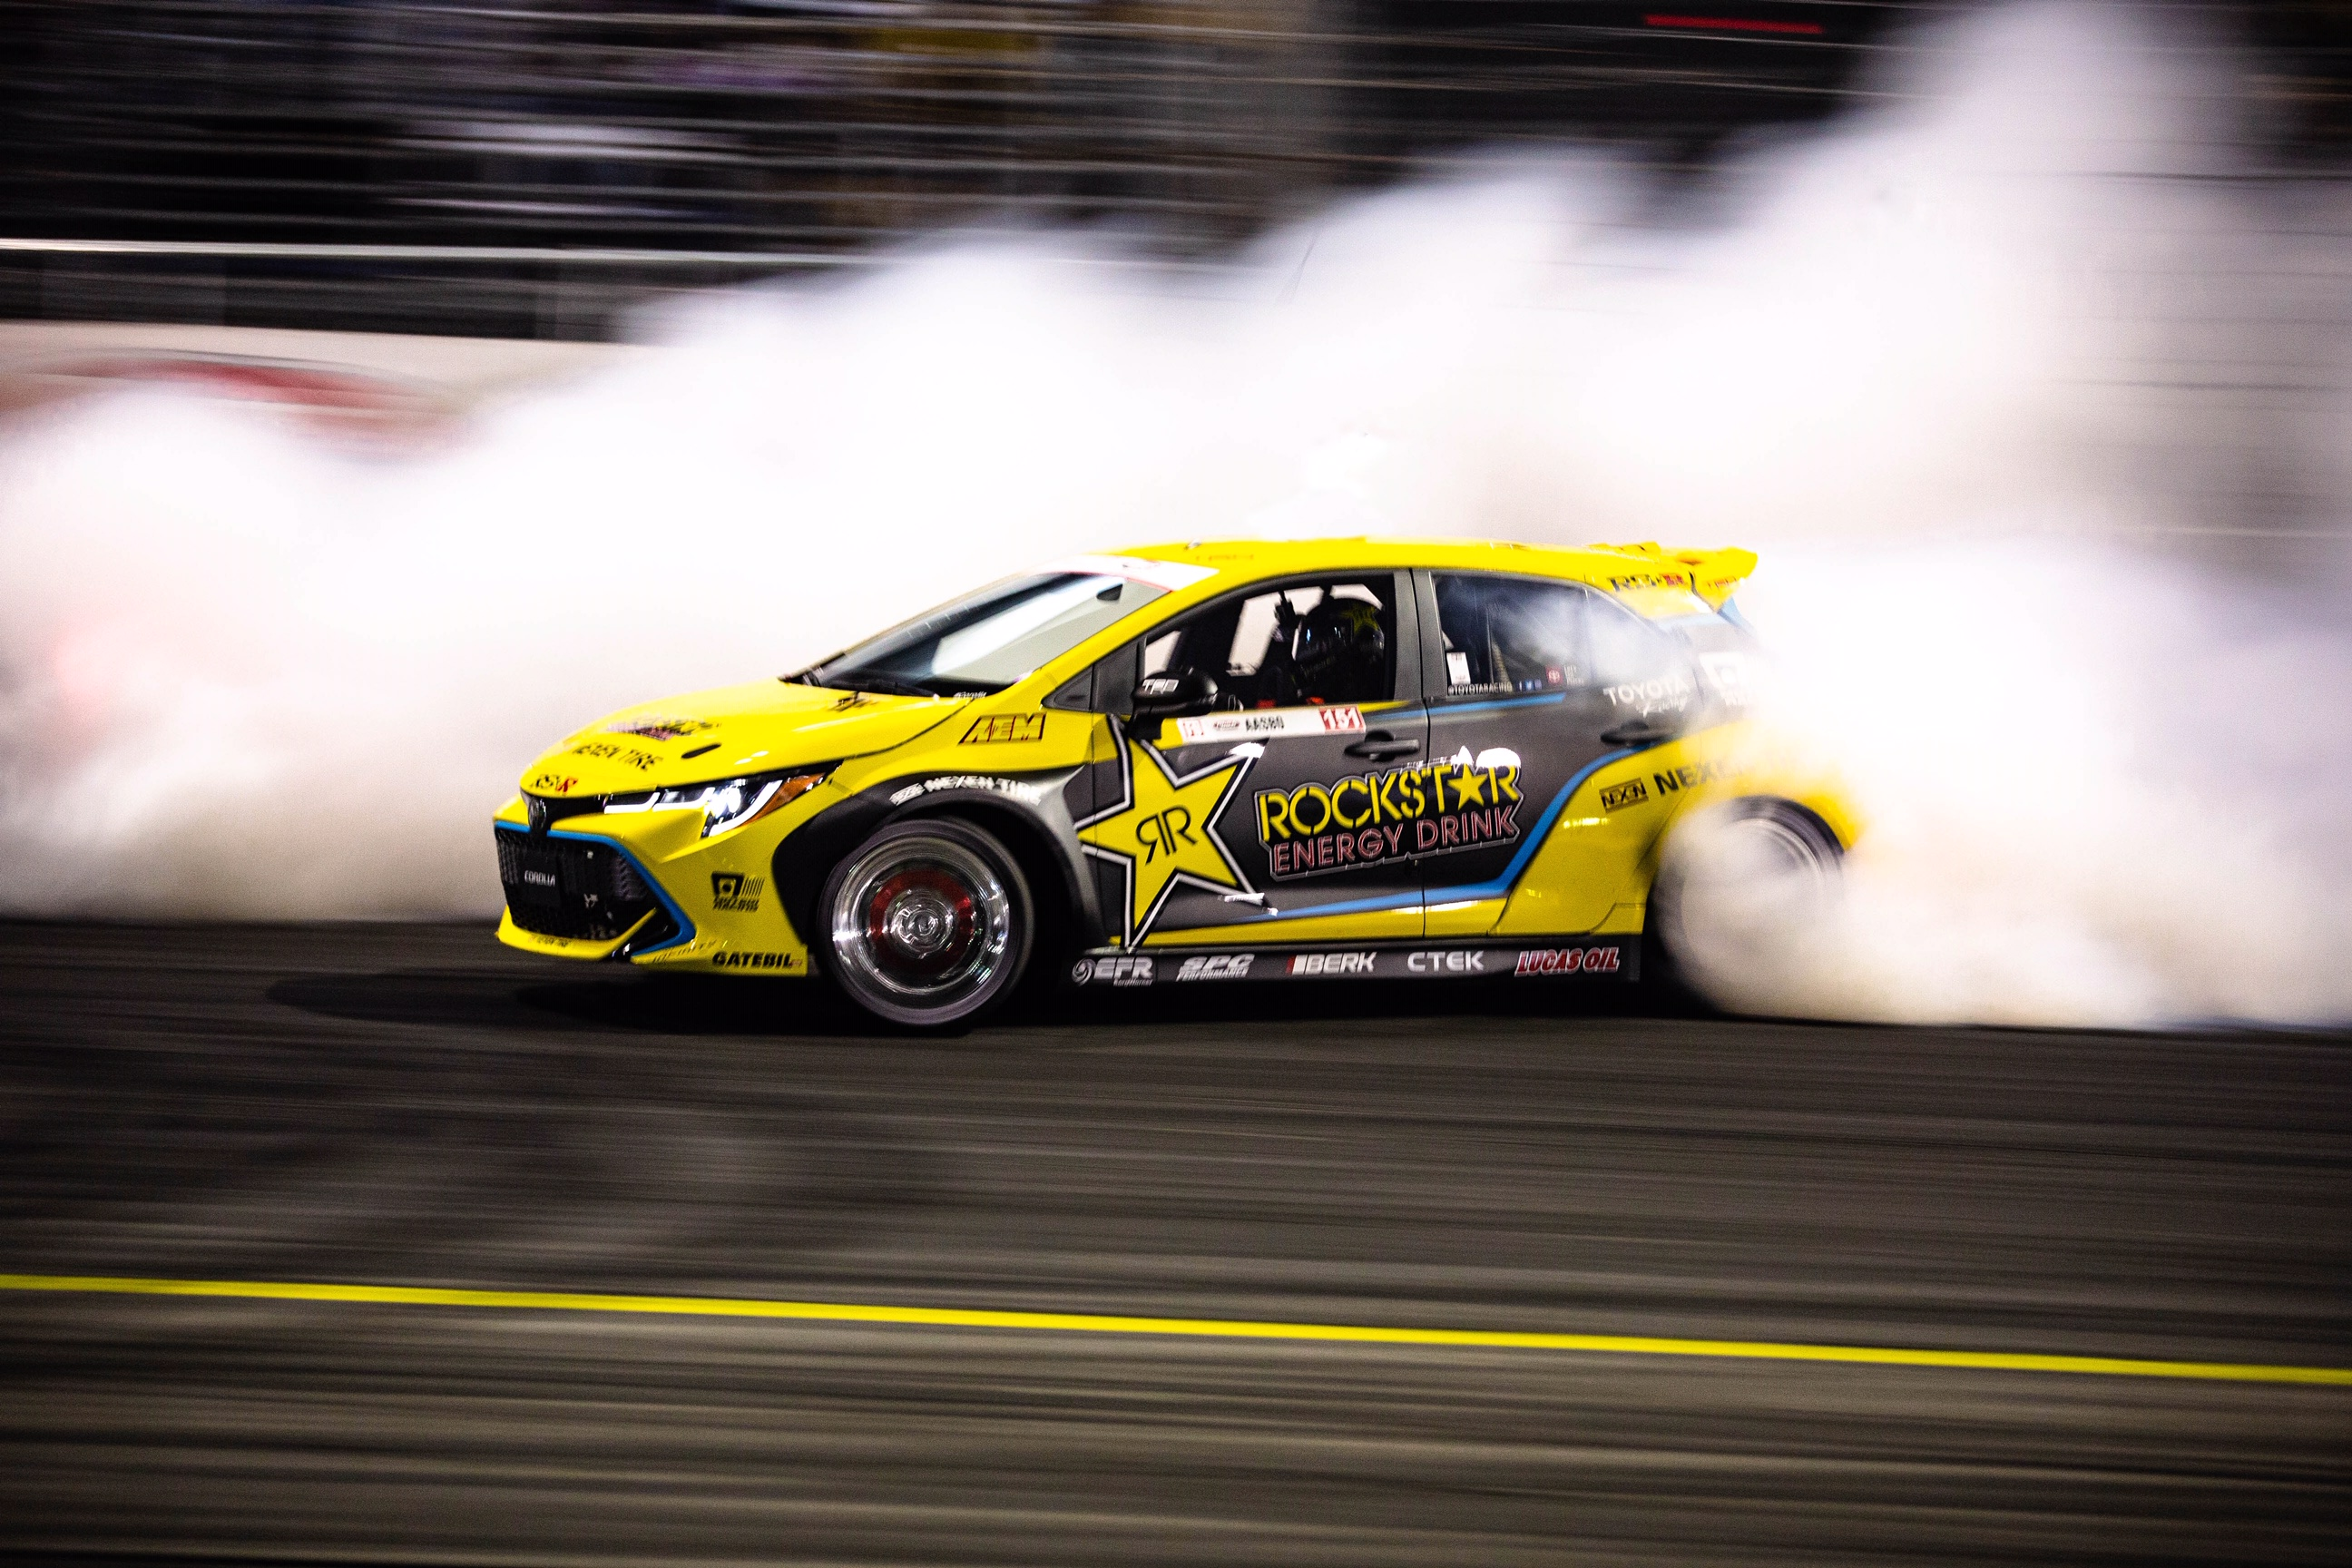 STRONG FINISH FOR FREDRIC AASBO IN FORMULA DRIFT CHAMPIONSHIP